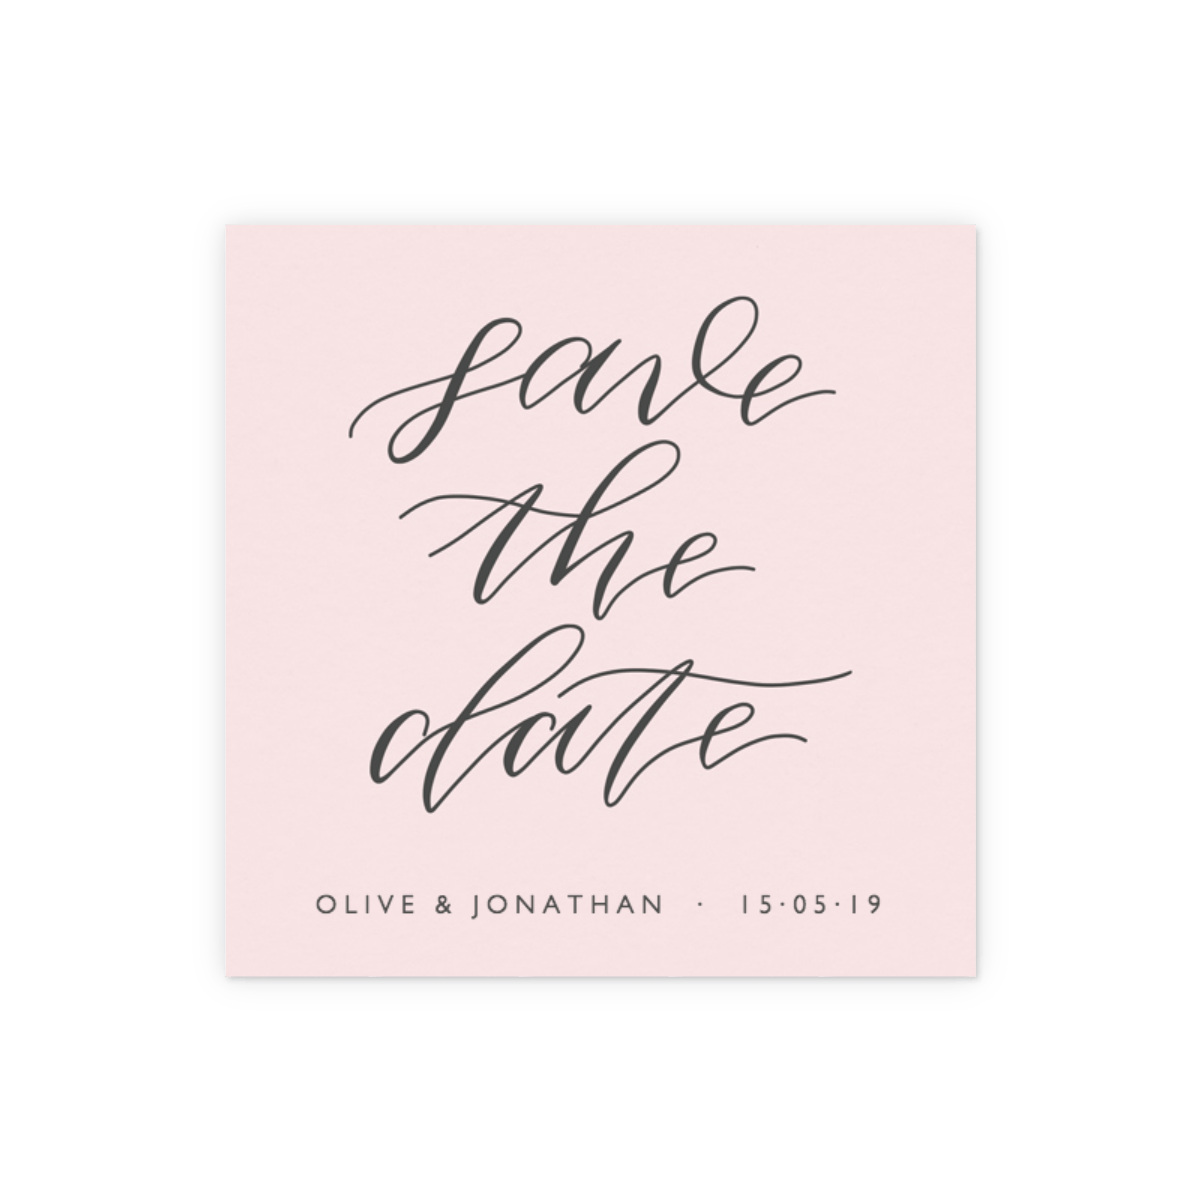 Https%3a%2f%2fwww.papier.com%2fproduct image%2f7336%2f11%2fsave the date calligraphic pink 1780 front 1534323222.png?ixlib=rb 1.1